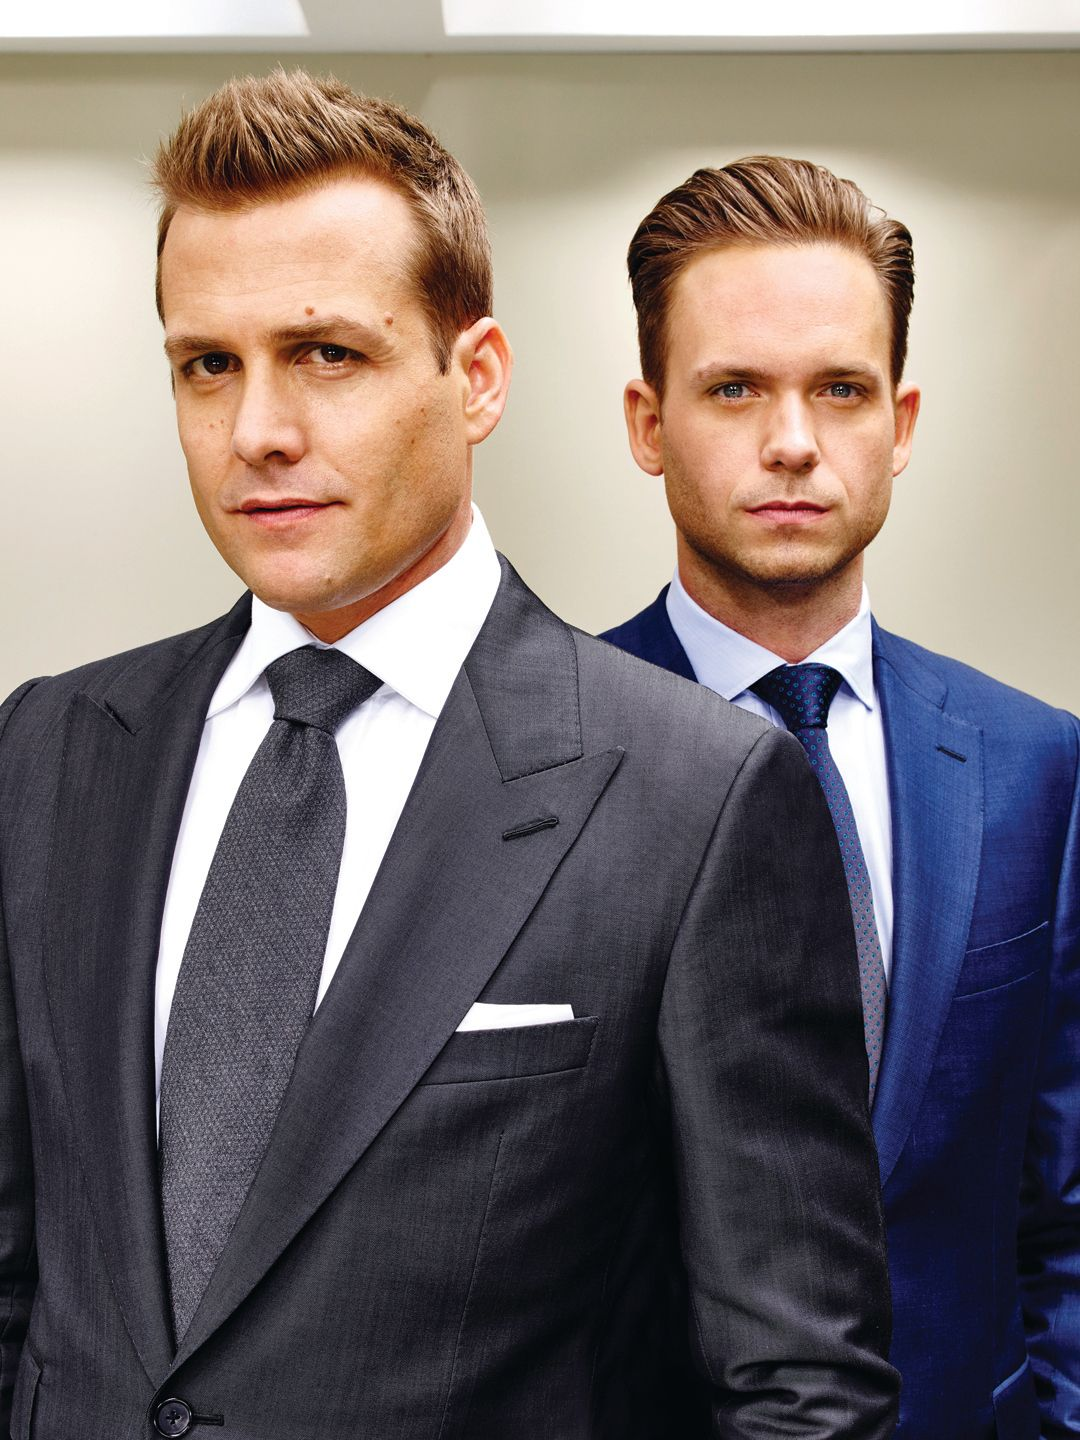 """in last august's cliffhanger summer finale of usa legal drama """"suits"""